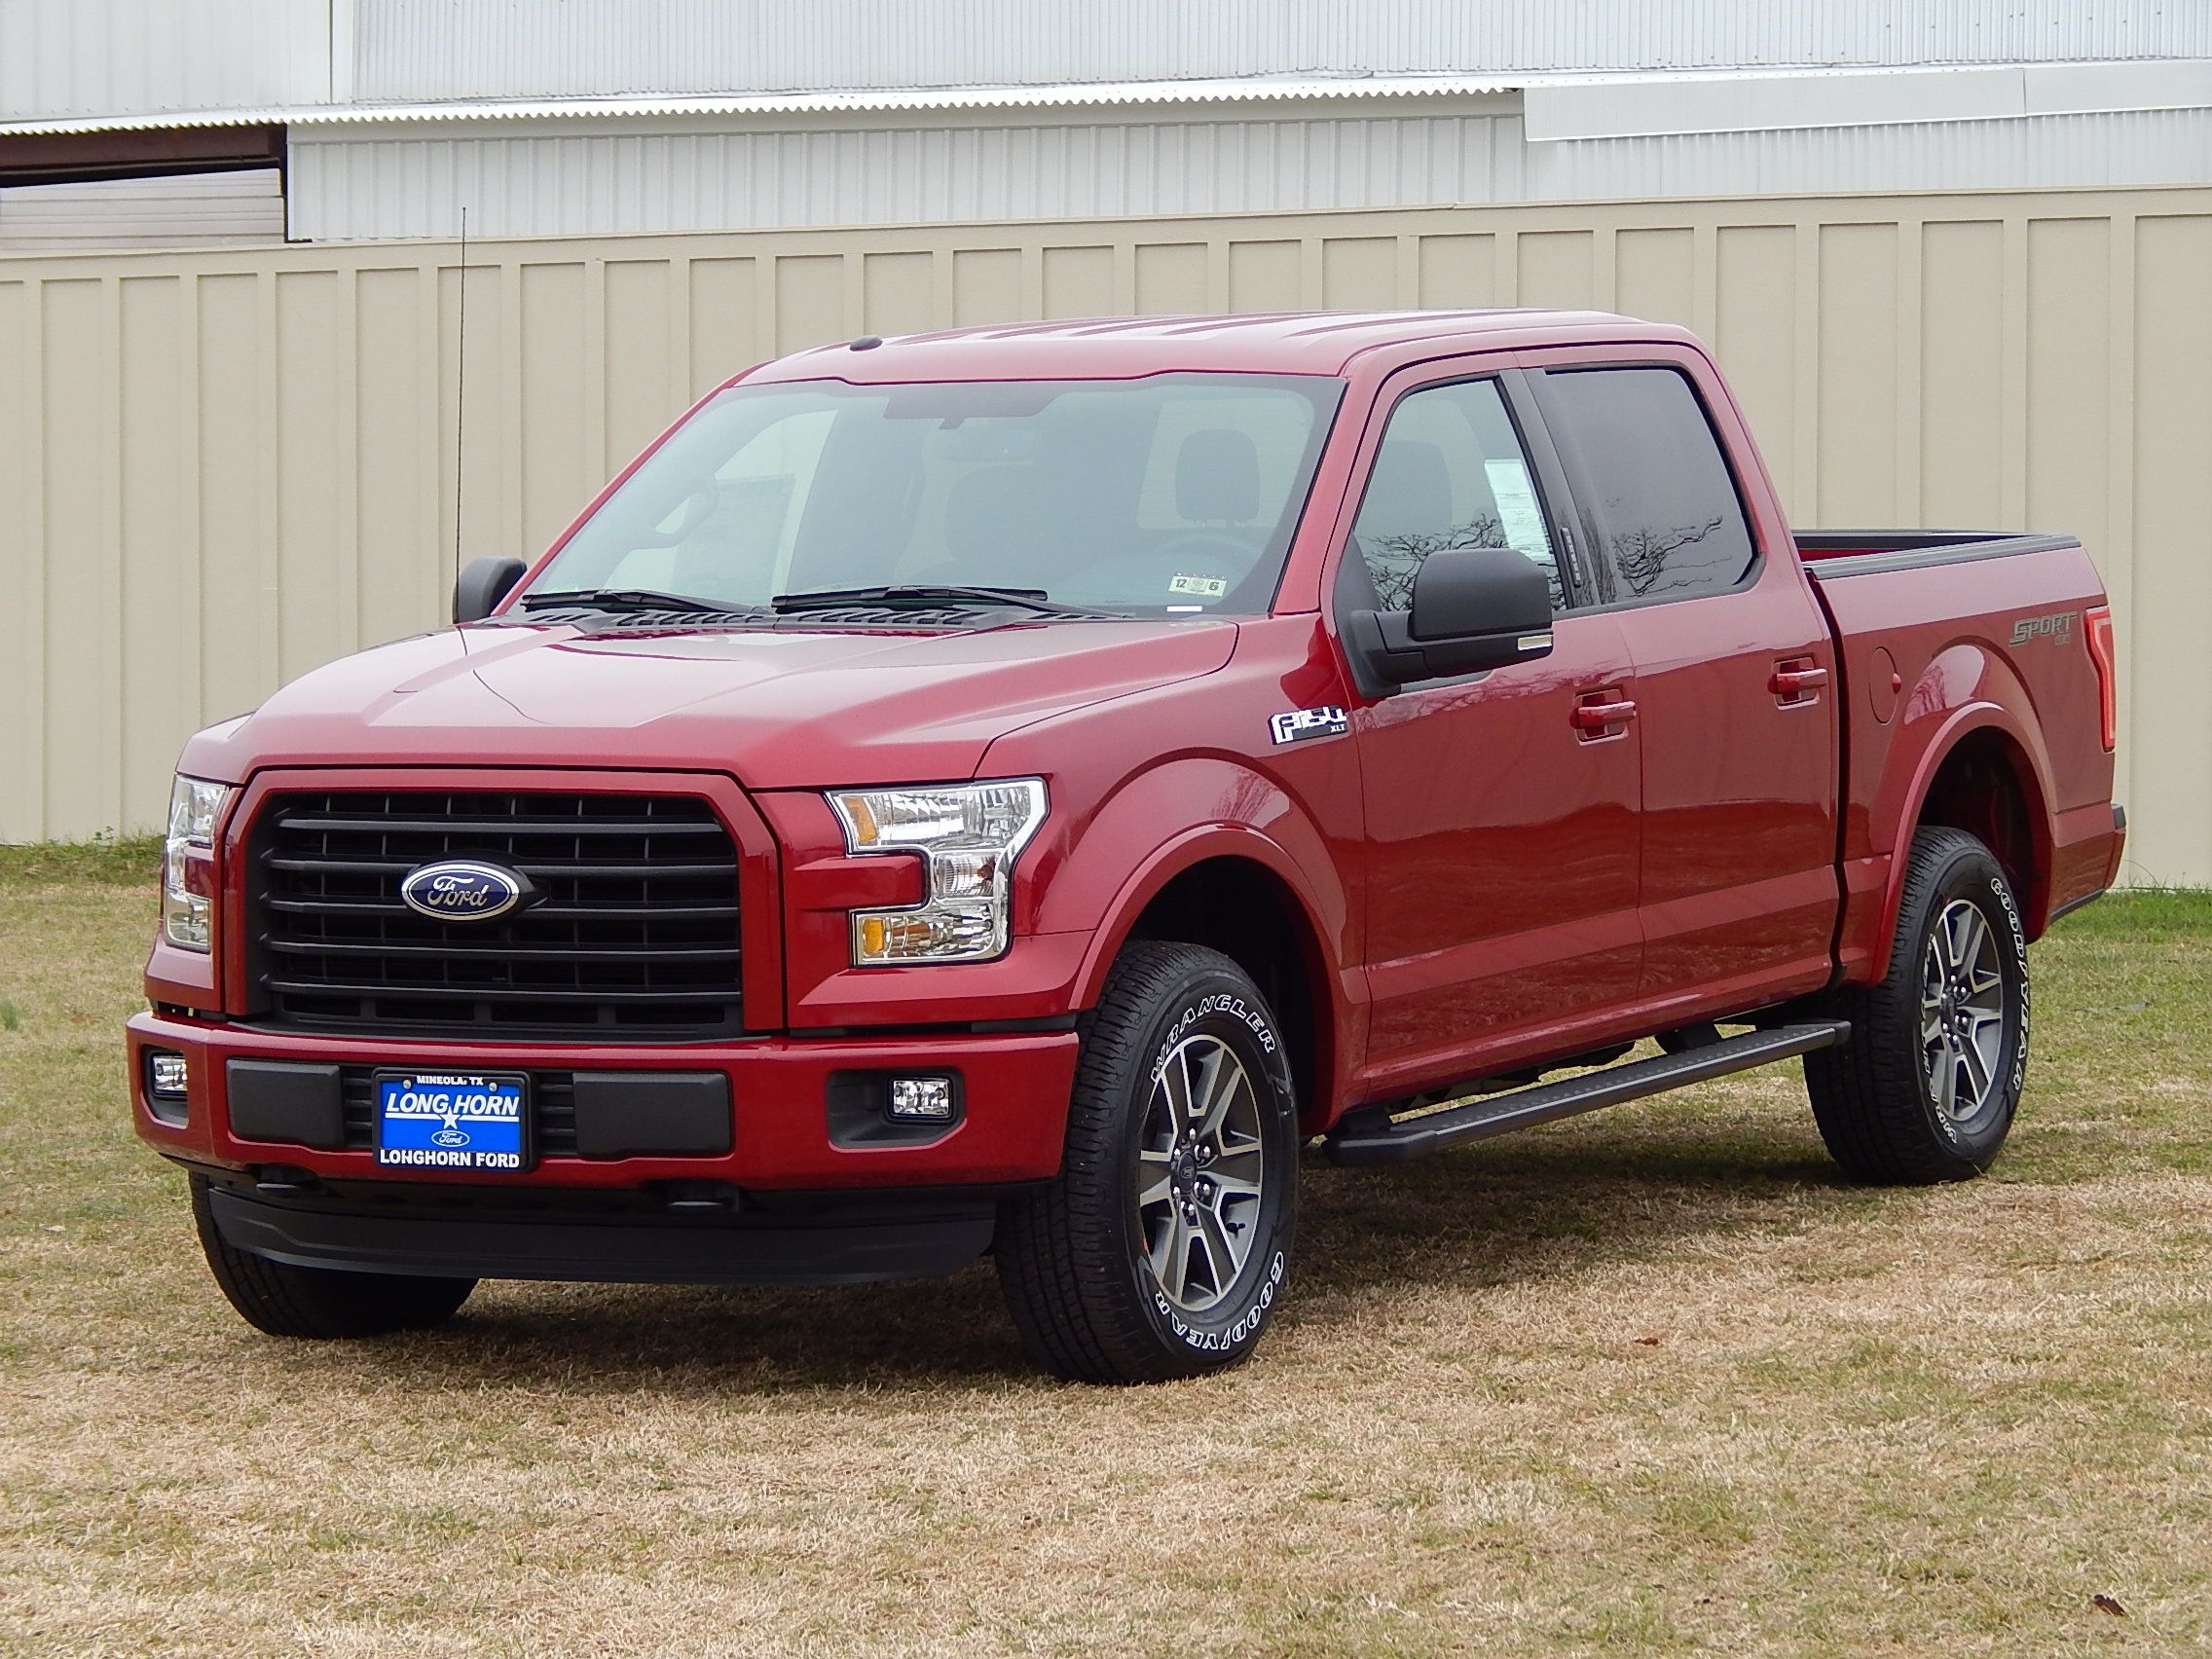 All new 2015 Ford F150 XLT SuperCrew 4X4 in Ruby Red